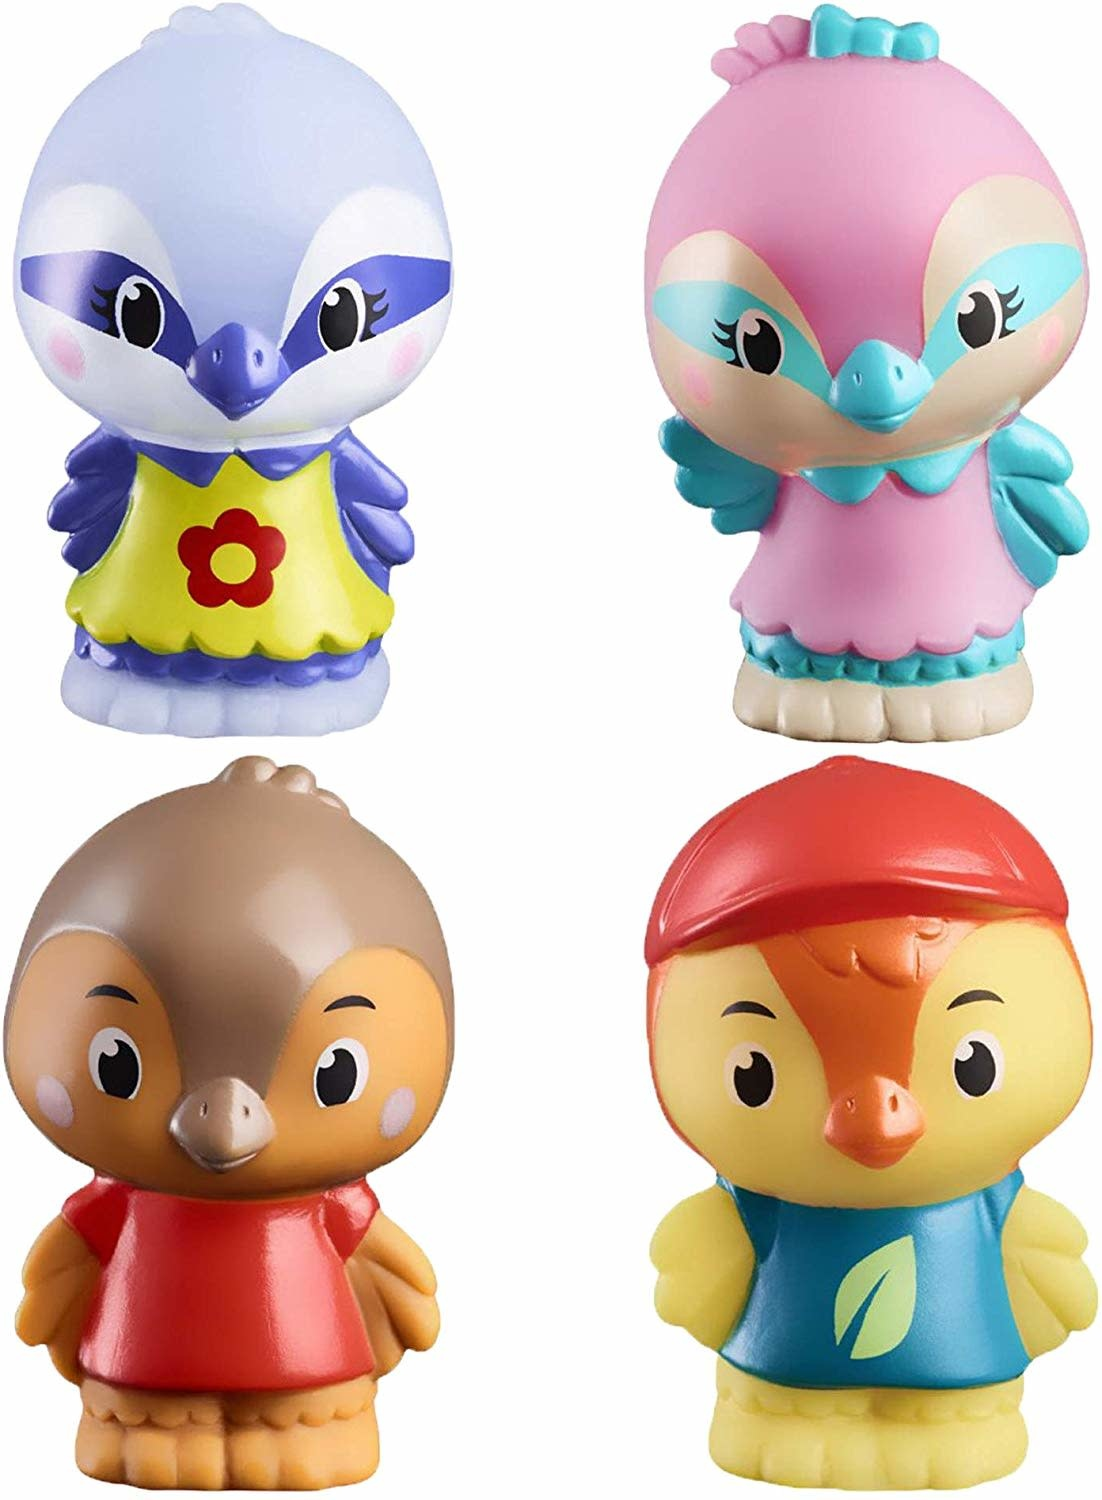 Timber Tots Twitwit Family by Fat Brain Toys